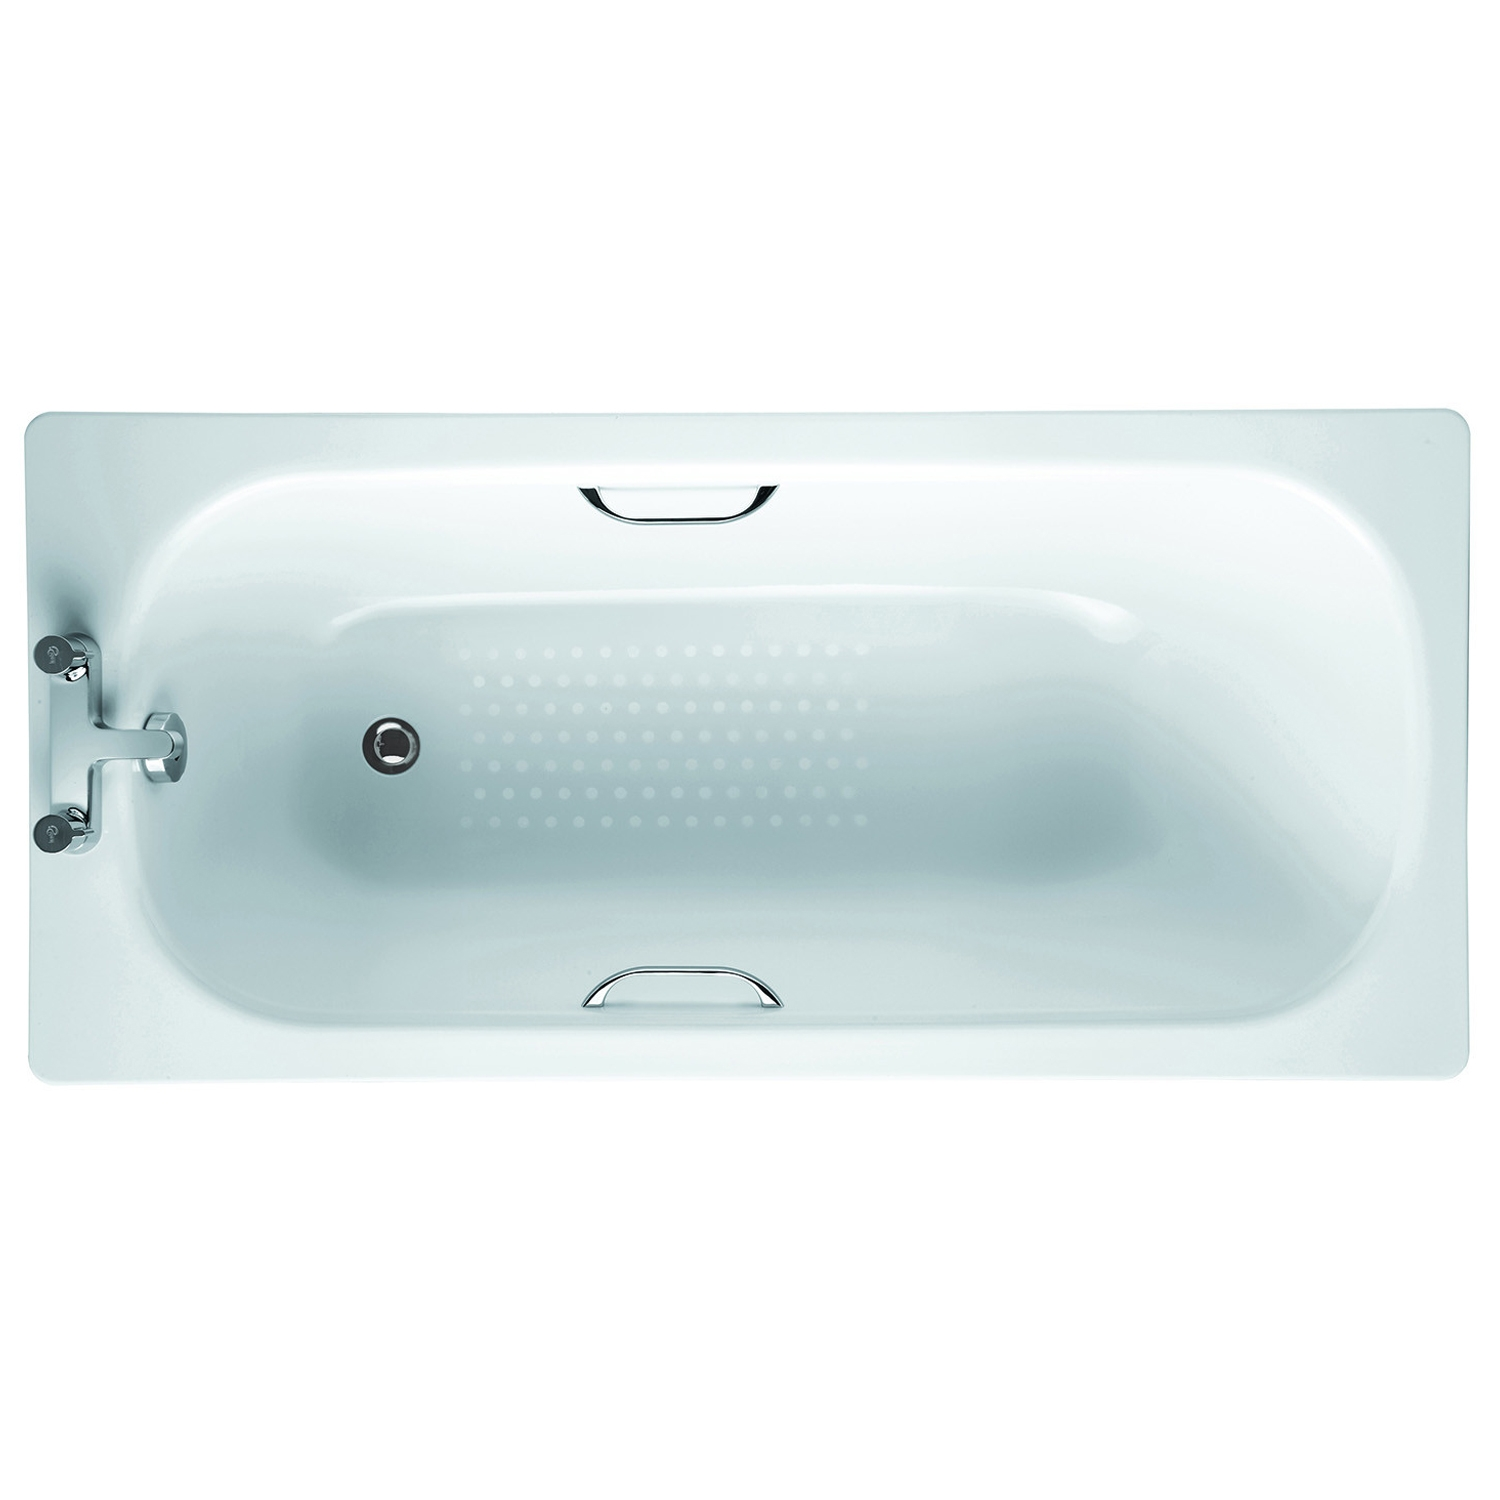 Verona Steel Single Ended Rectangular Antislip Bath 1500mm x 700mm - Drilled Grip Hole